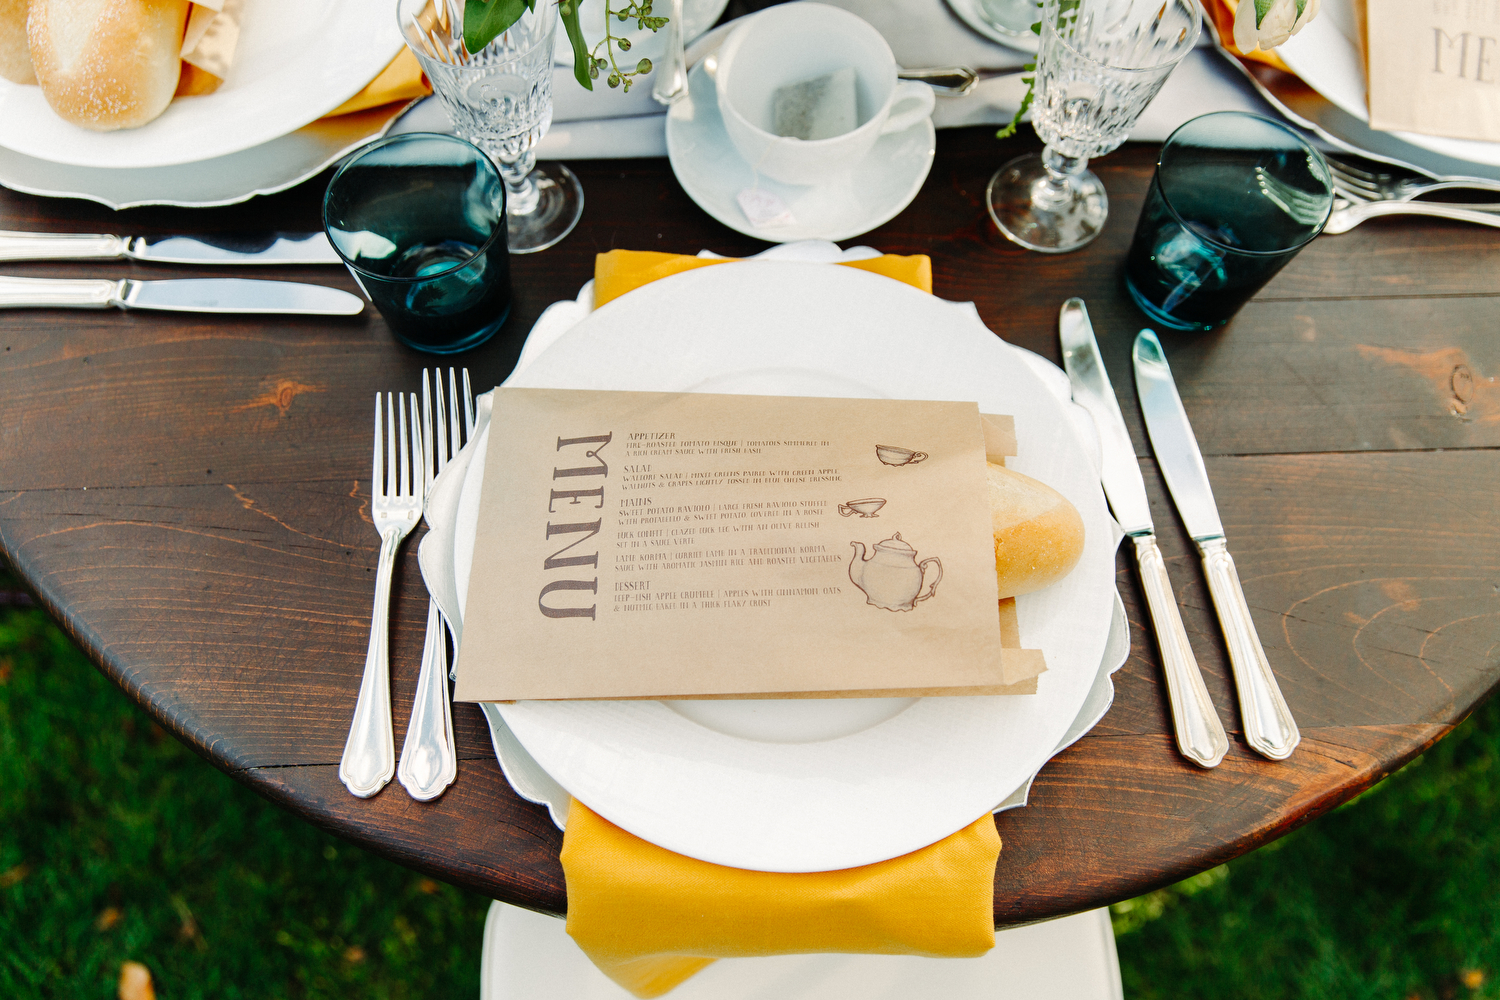 langdon hall menu cards